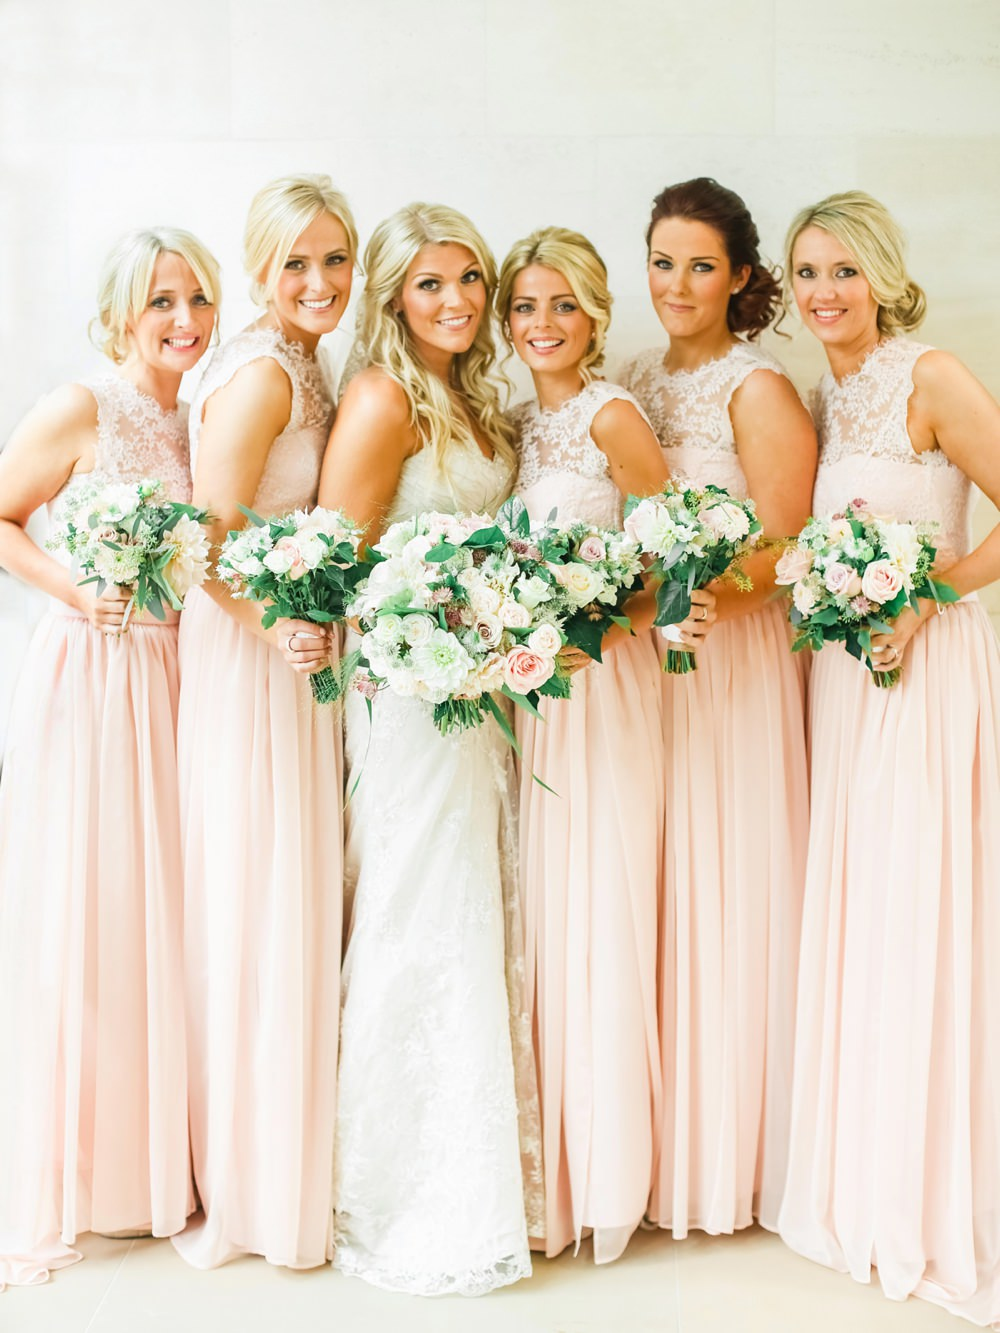 An ian stuart sapphire bridal gown for a classically romantic pink bridesmaid dresses image by a hrefhttpbelleandbeaublog target ombrellifo Image collections